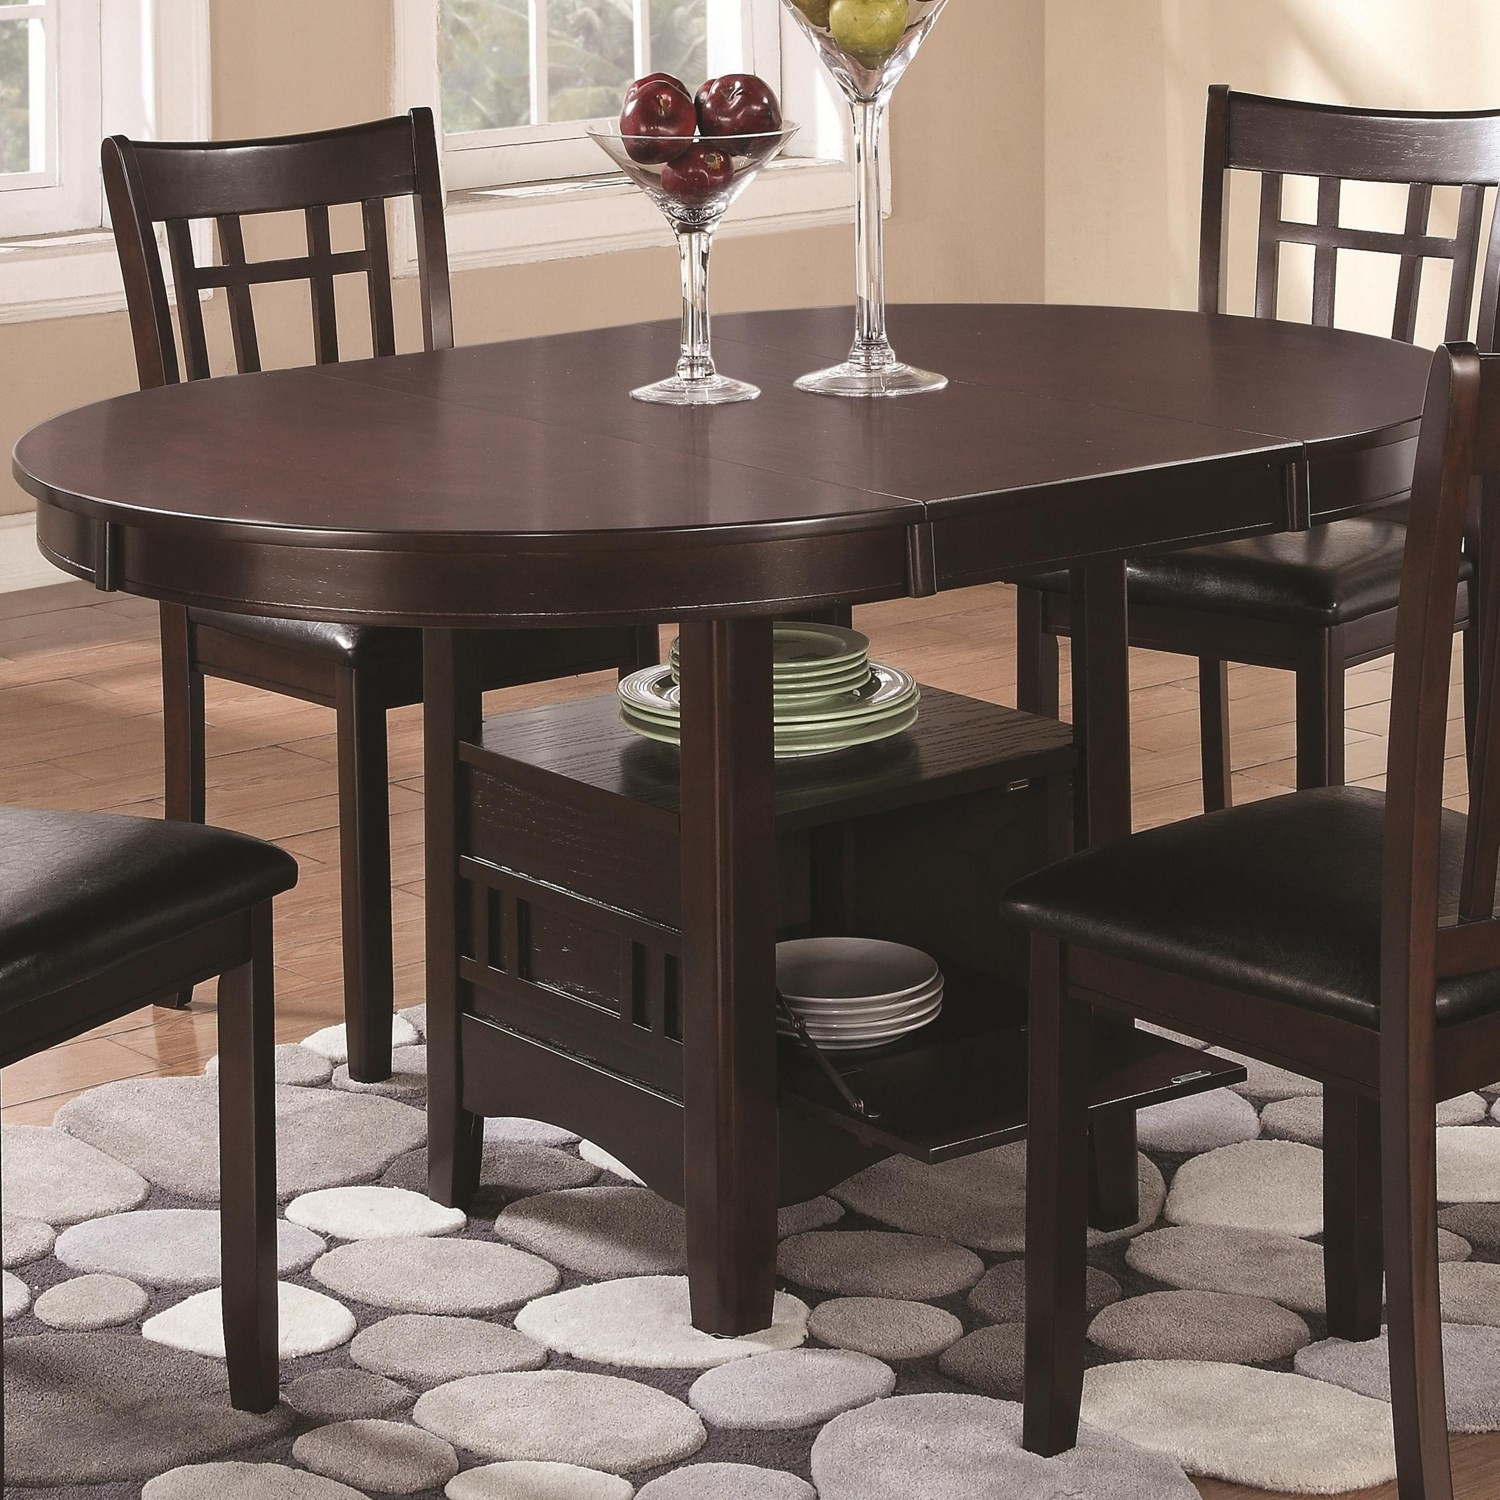 Best ideas about Dining Table With Storage . Save or Pin Coaster Fine Furniture Lavon Dining Table with Storage in Now.